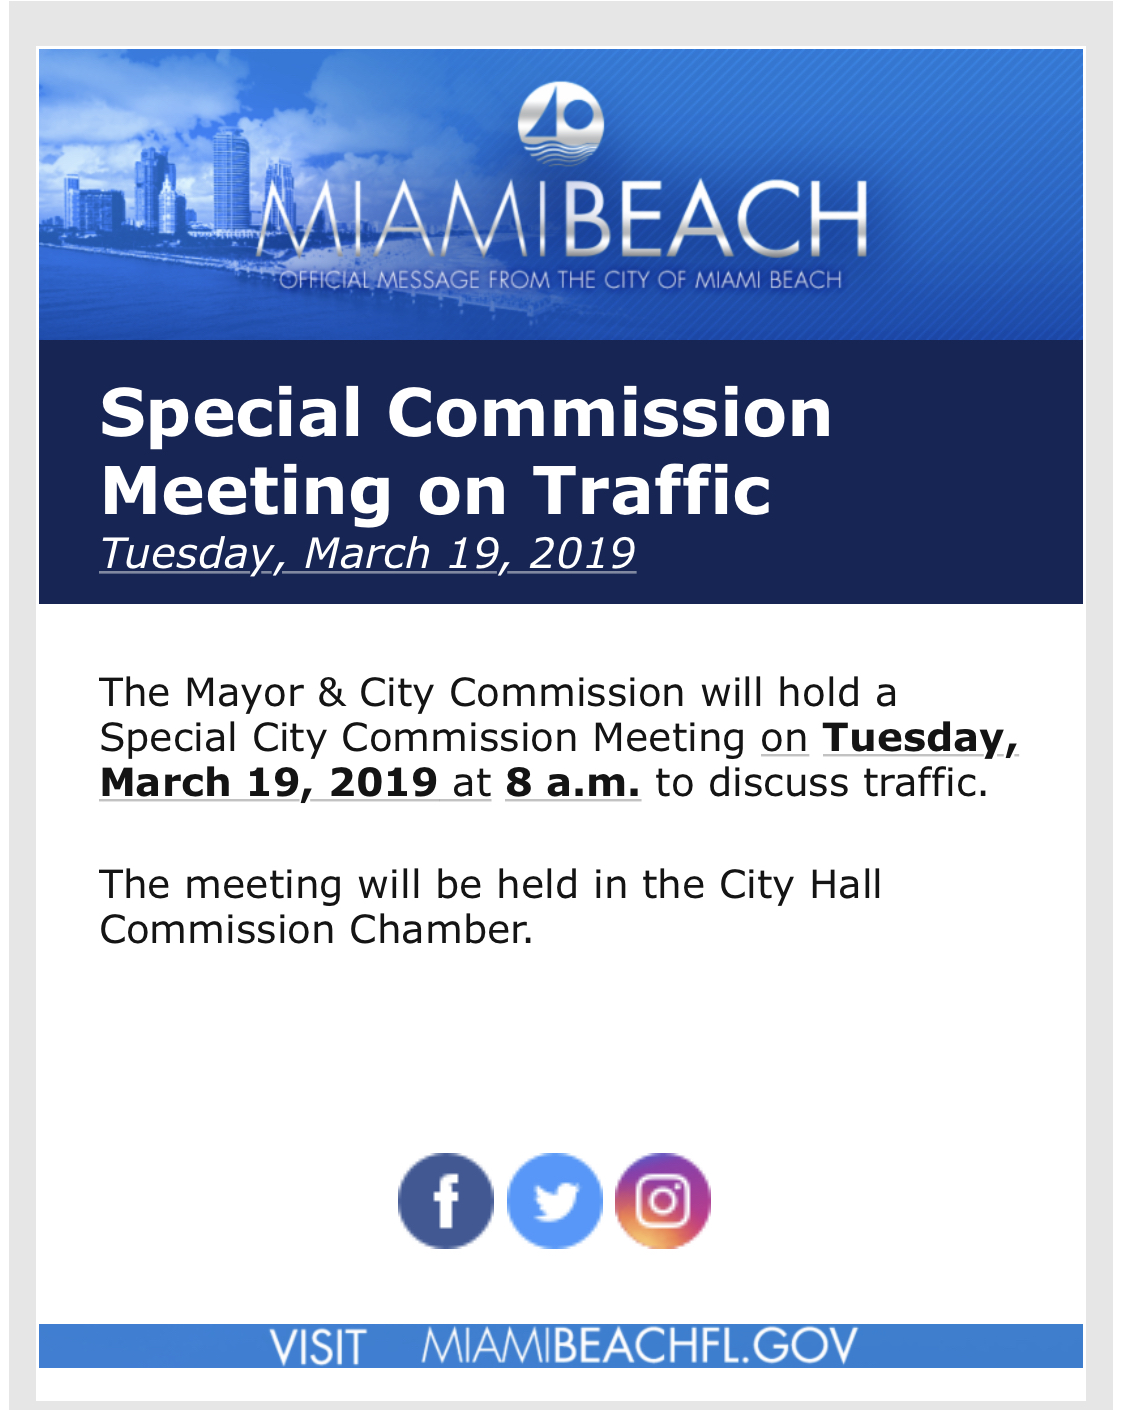 Special Commission Meeting on Traffic